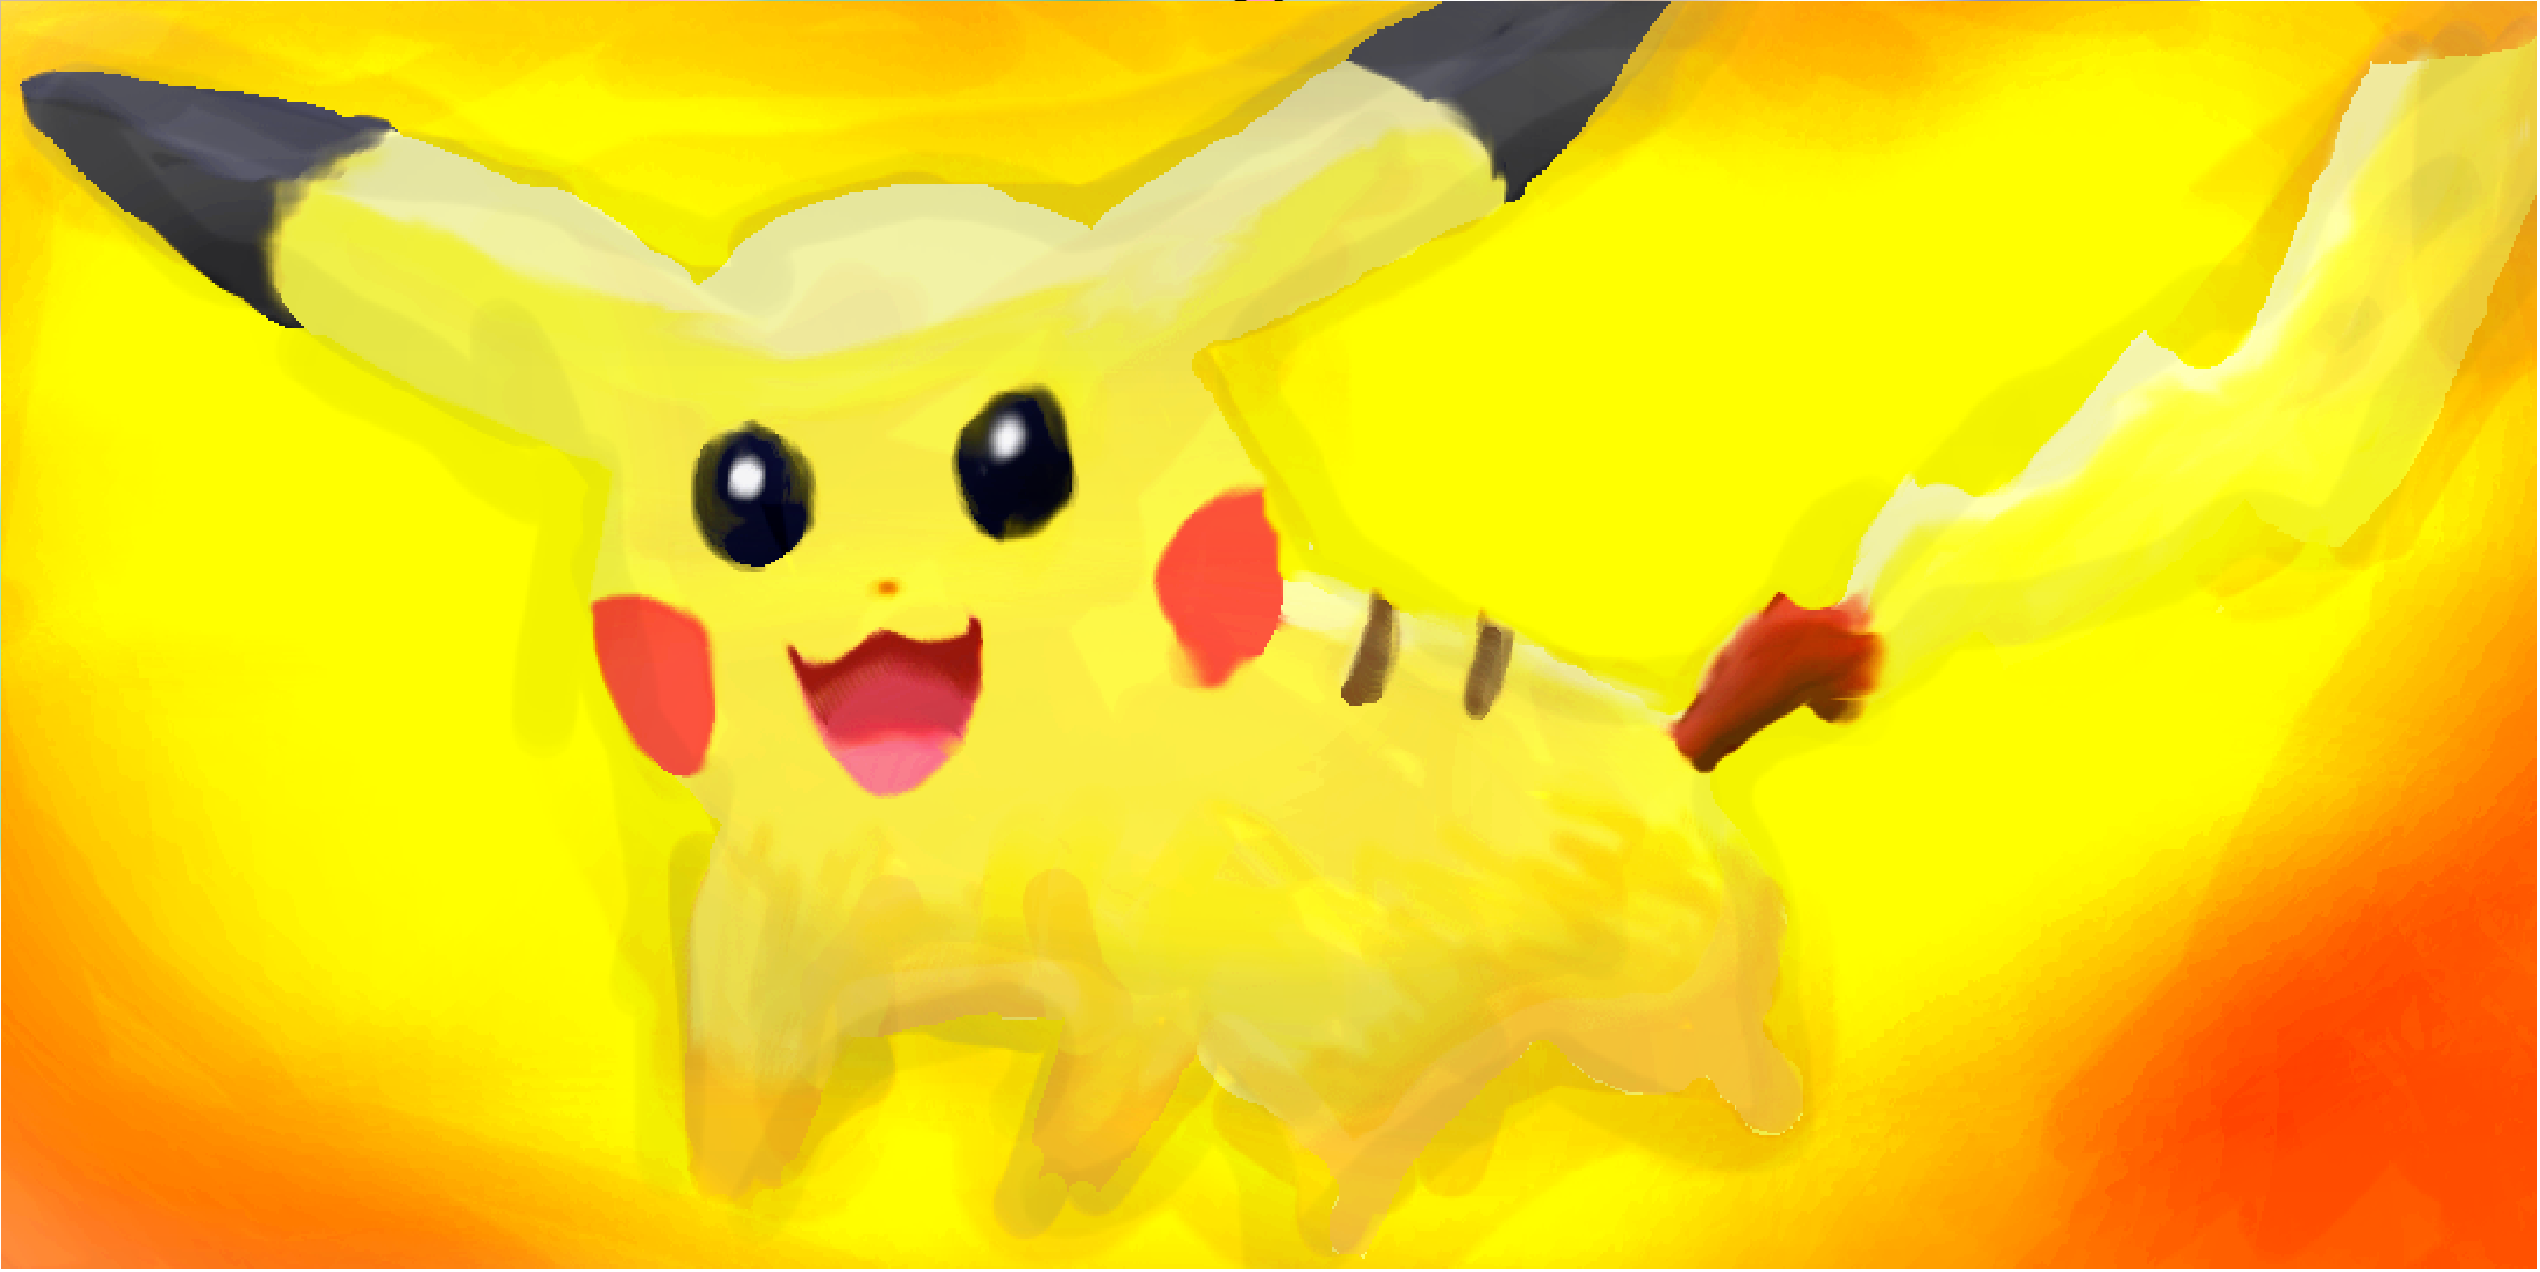 Pokemon: Pikachu - Thundershock by Cleasia on DeviantArt